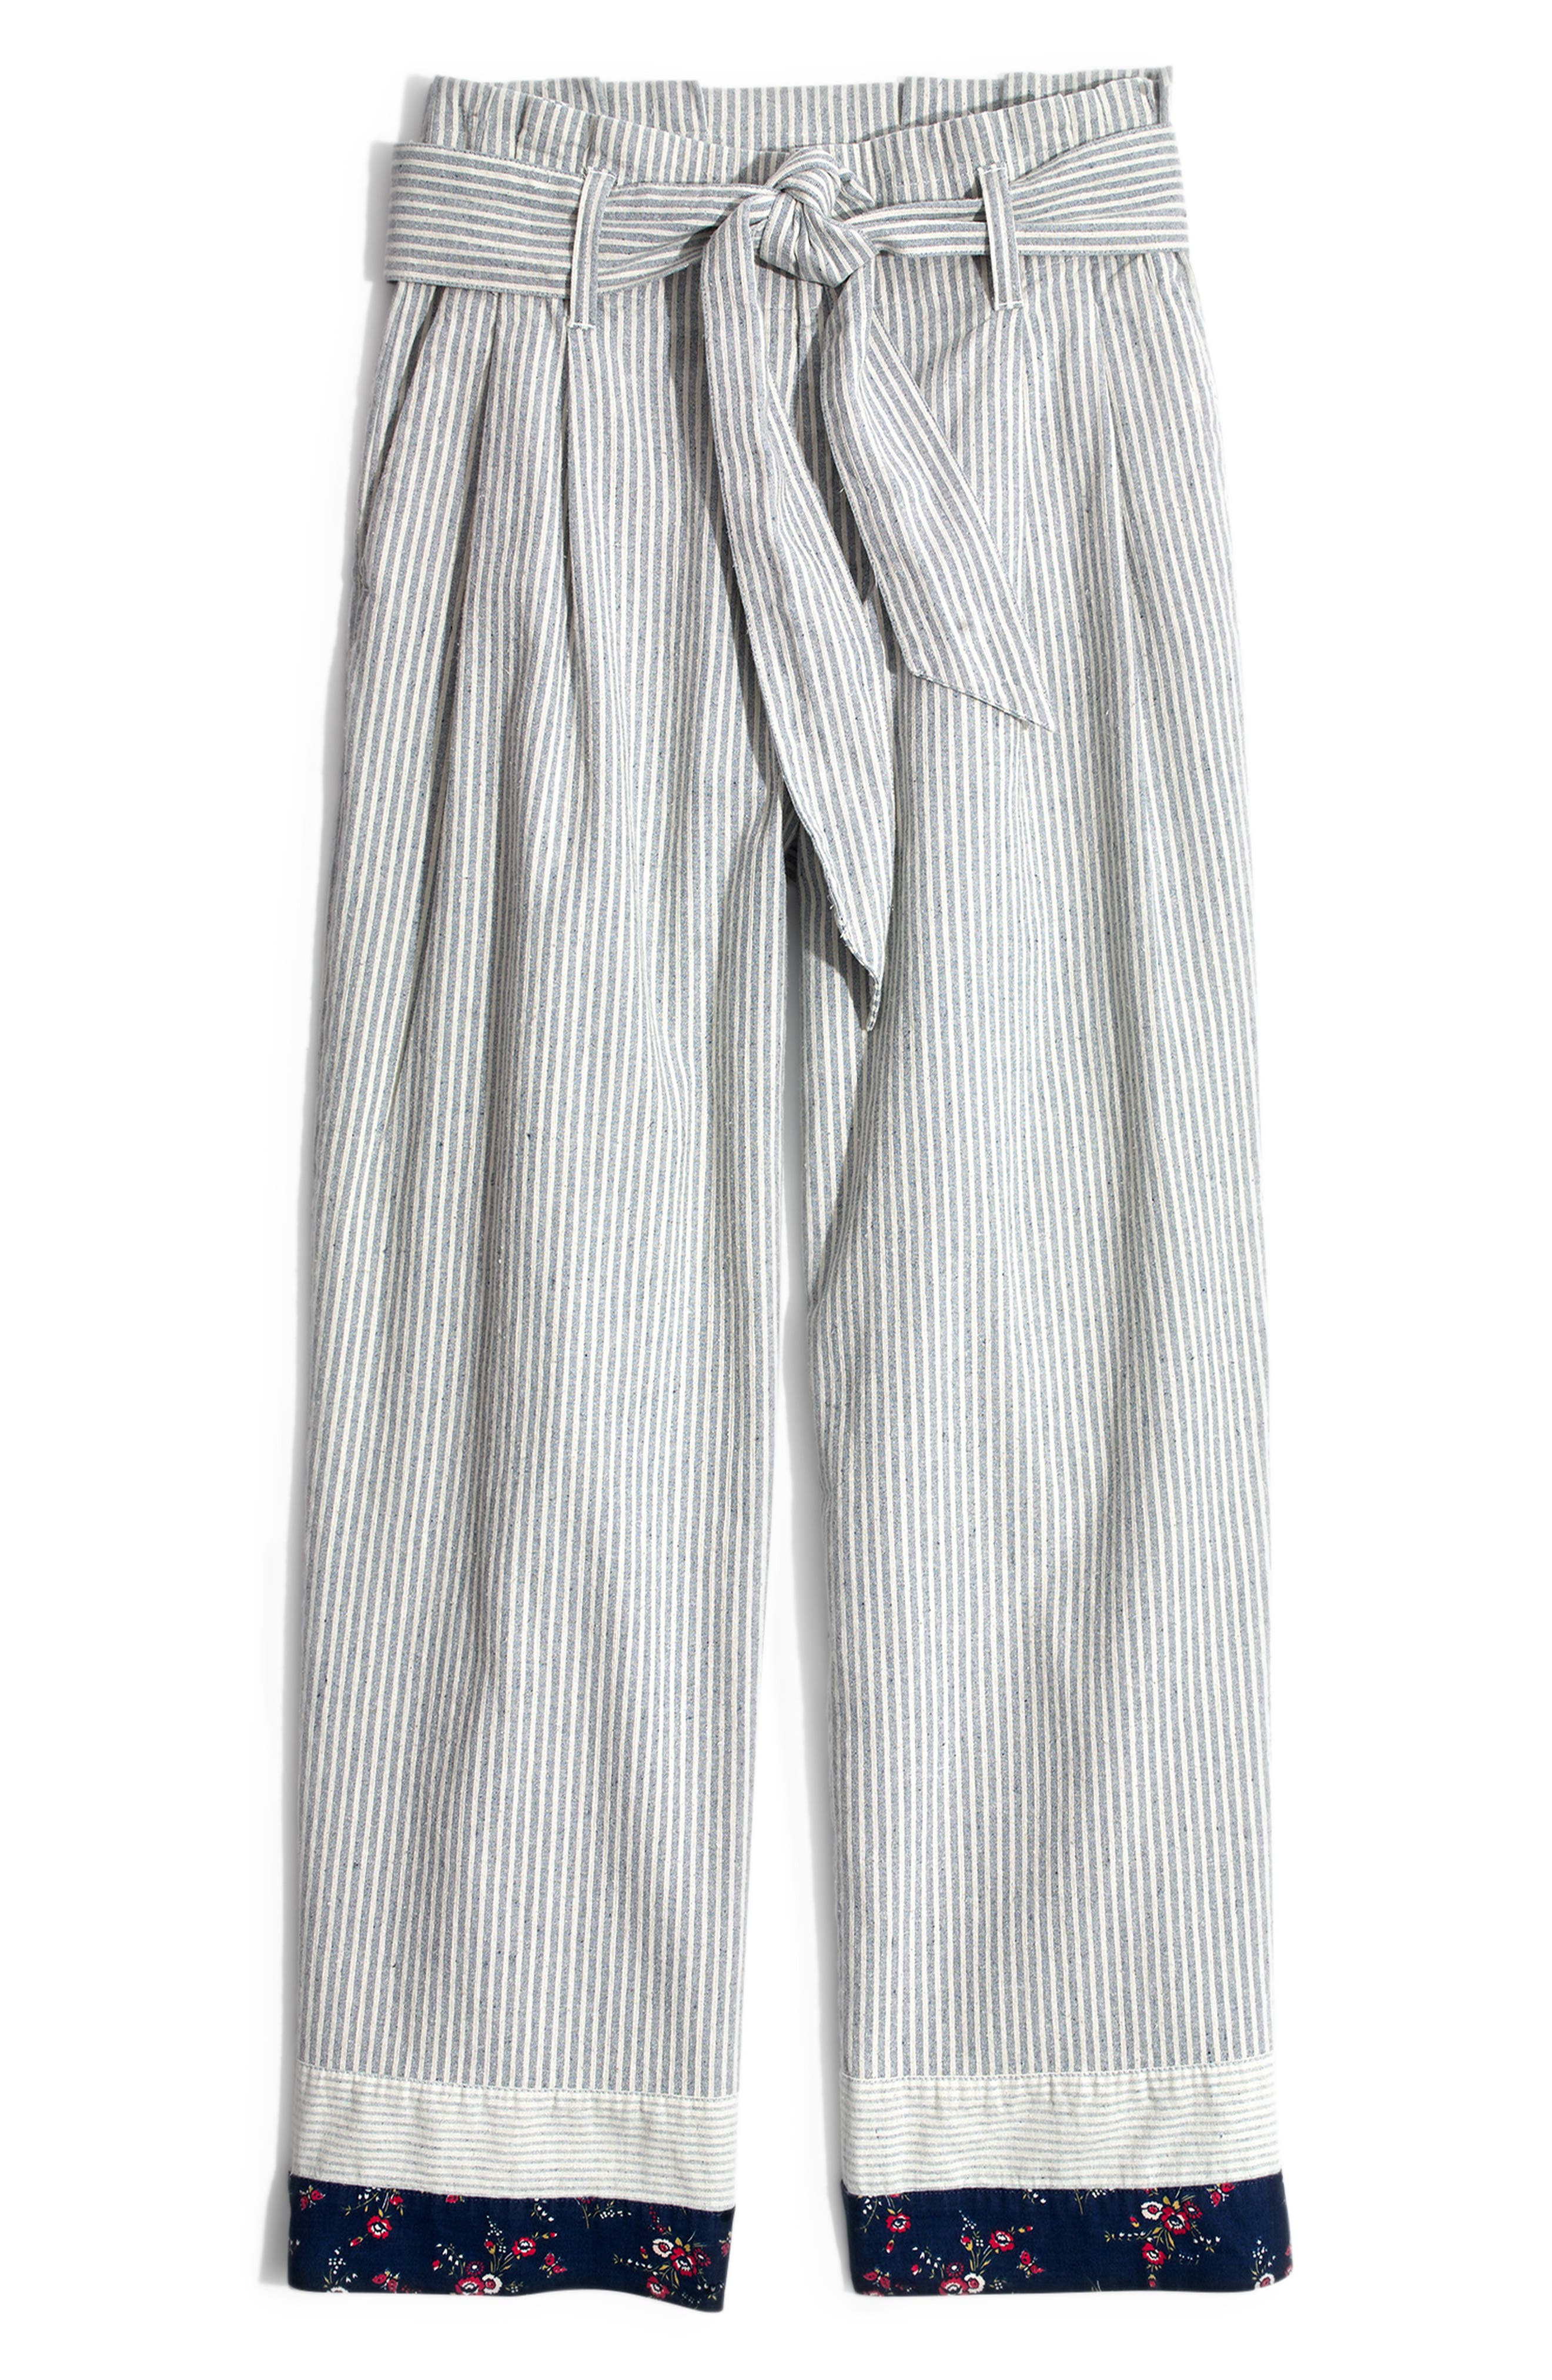 MADEWELL, x The New Denim Project<sup>®</sup> Patchwork Paperbag Pants, Alternate thumbnail 6, color, BLUE RAILROAD STRIPE